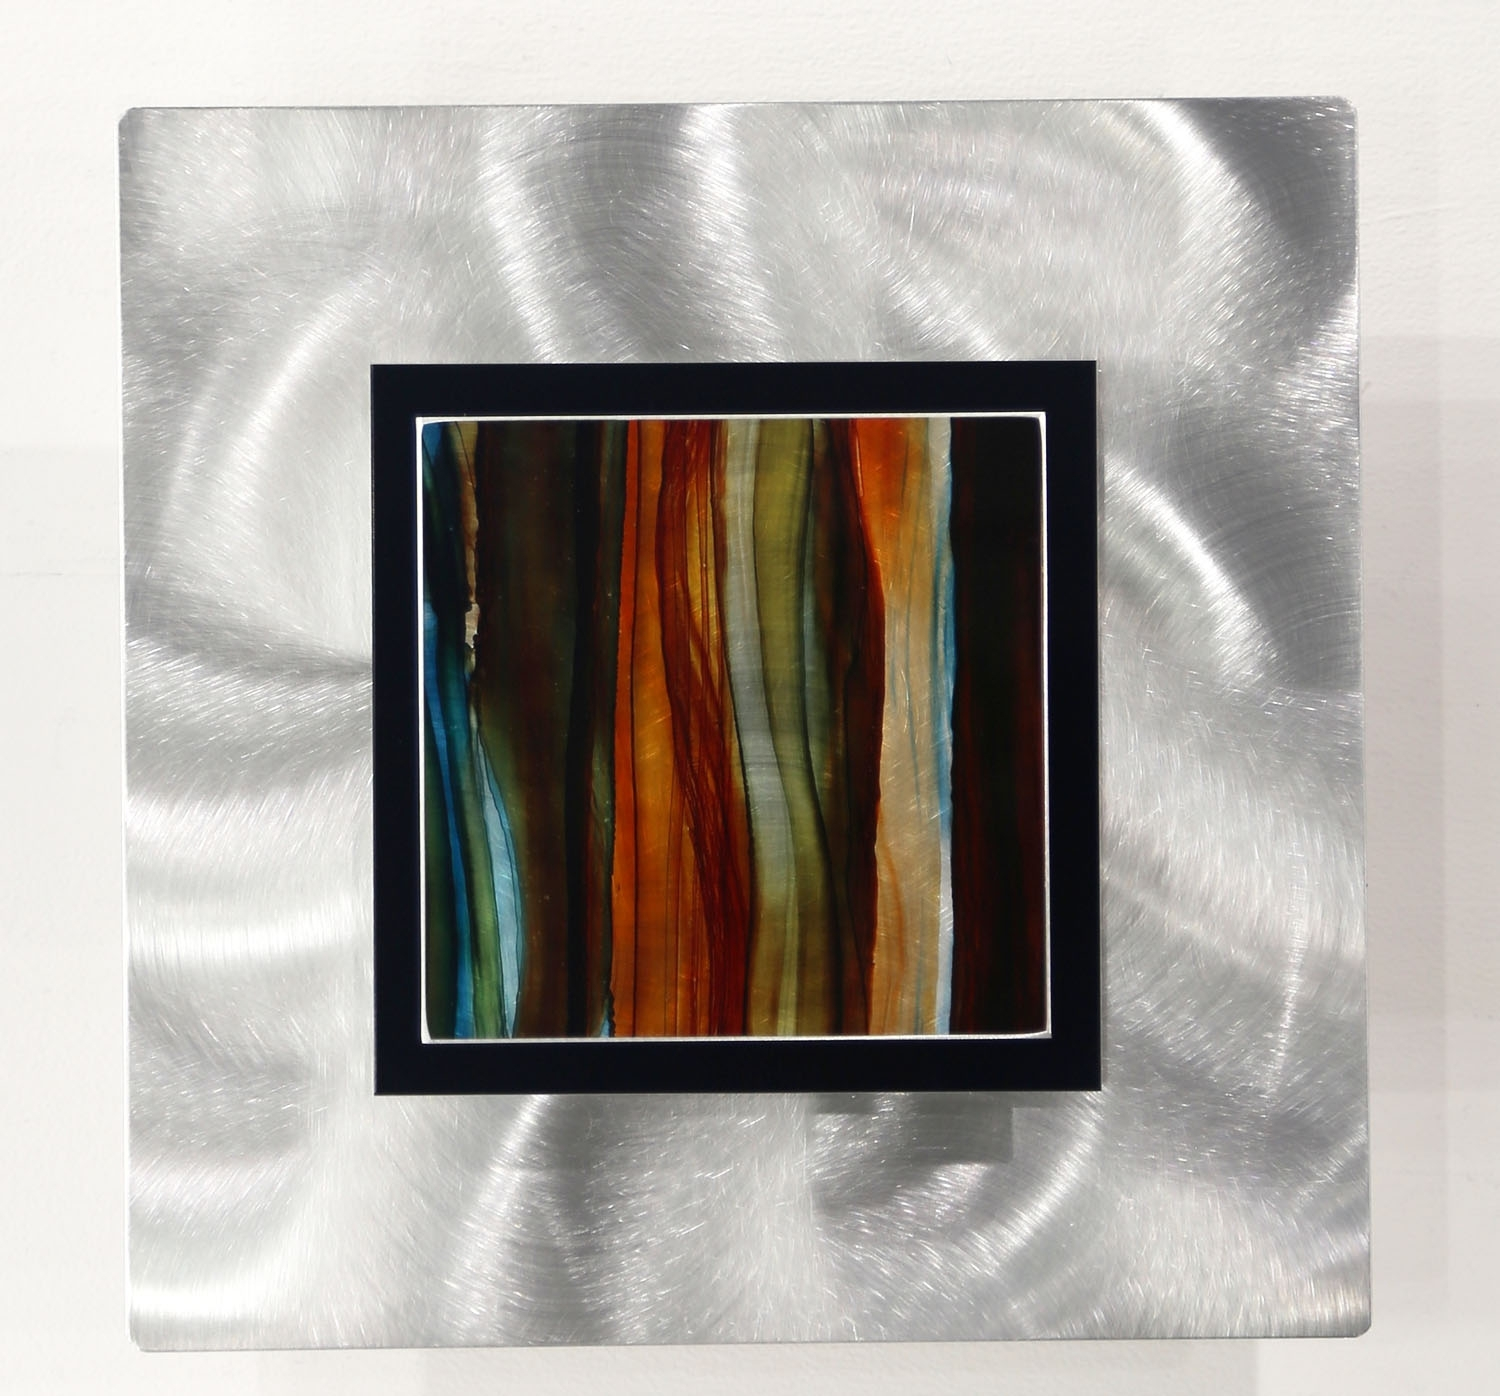 Oj 544jon Allen – Contemporary Metal Wall Art Accent Inside Latest Earth Tones Wall Accents (View 4 of 15)